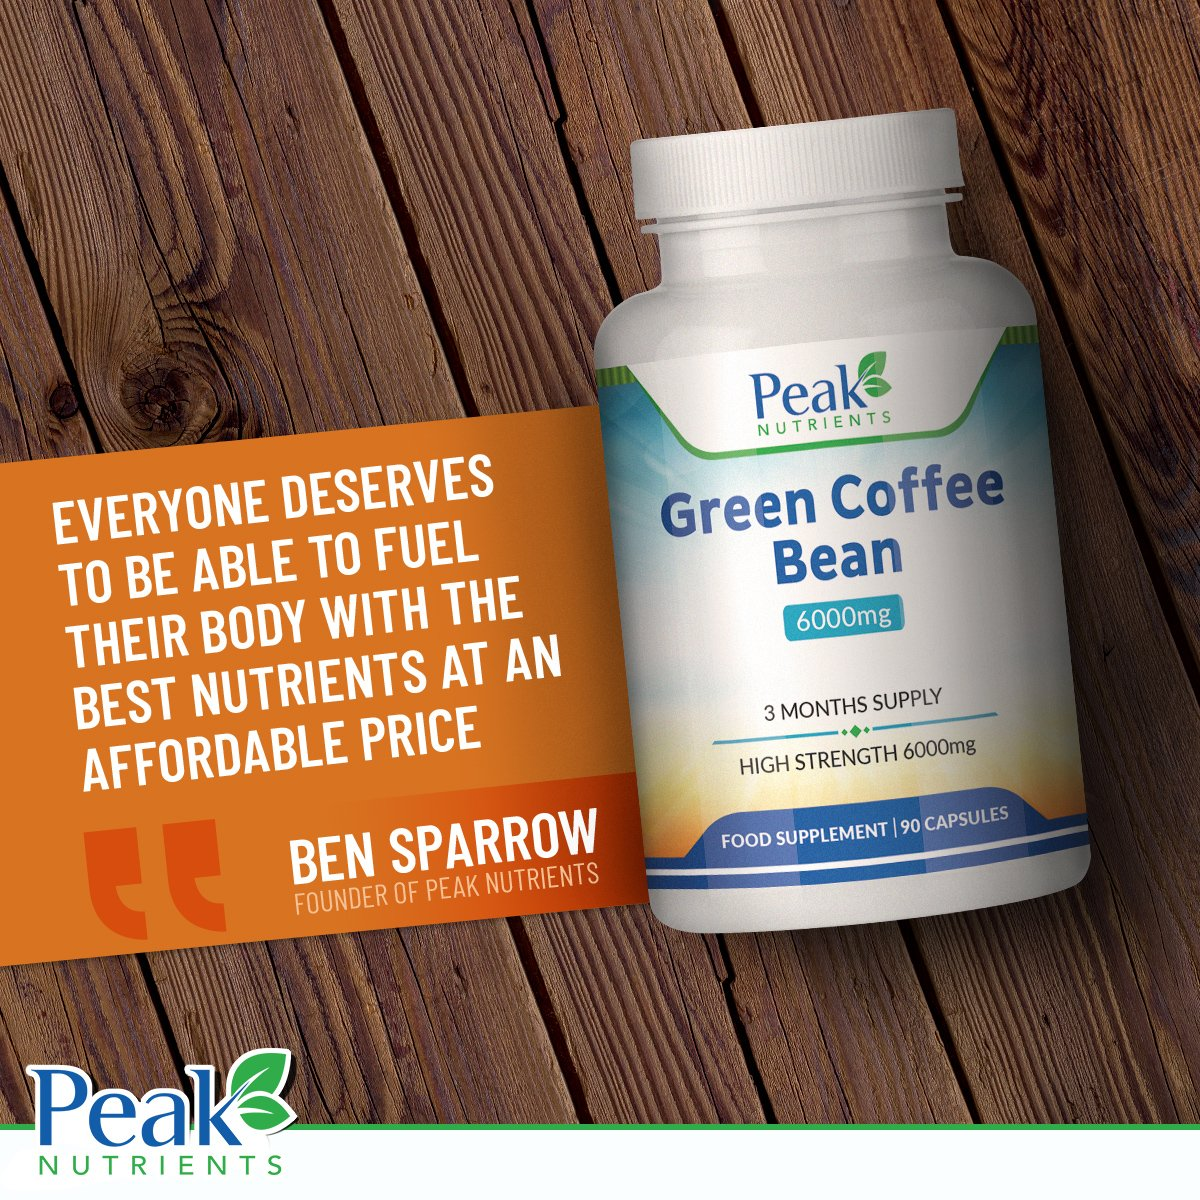 Green Coffee Bean Extract 6000mg, 90 Capsules (3 Months Supply), High Strength For Maximum Results, Weight Management Supplement - Manufactured In The U.K